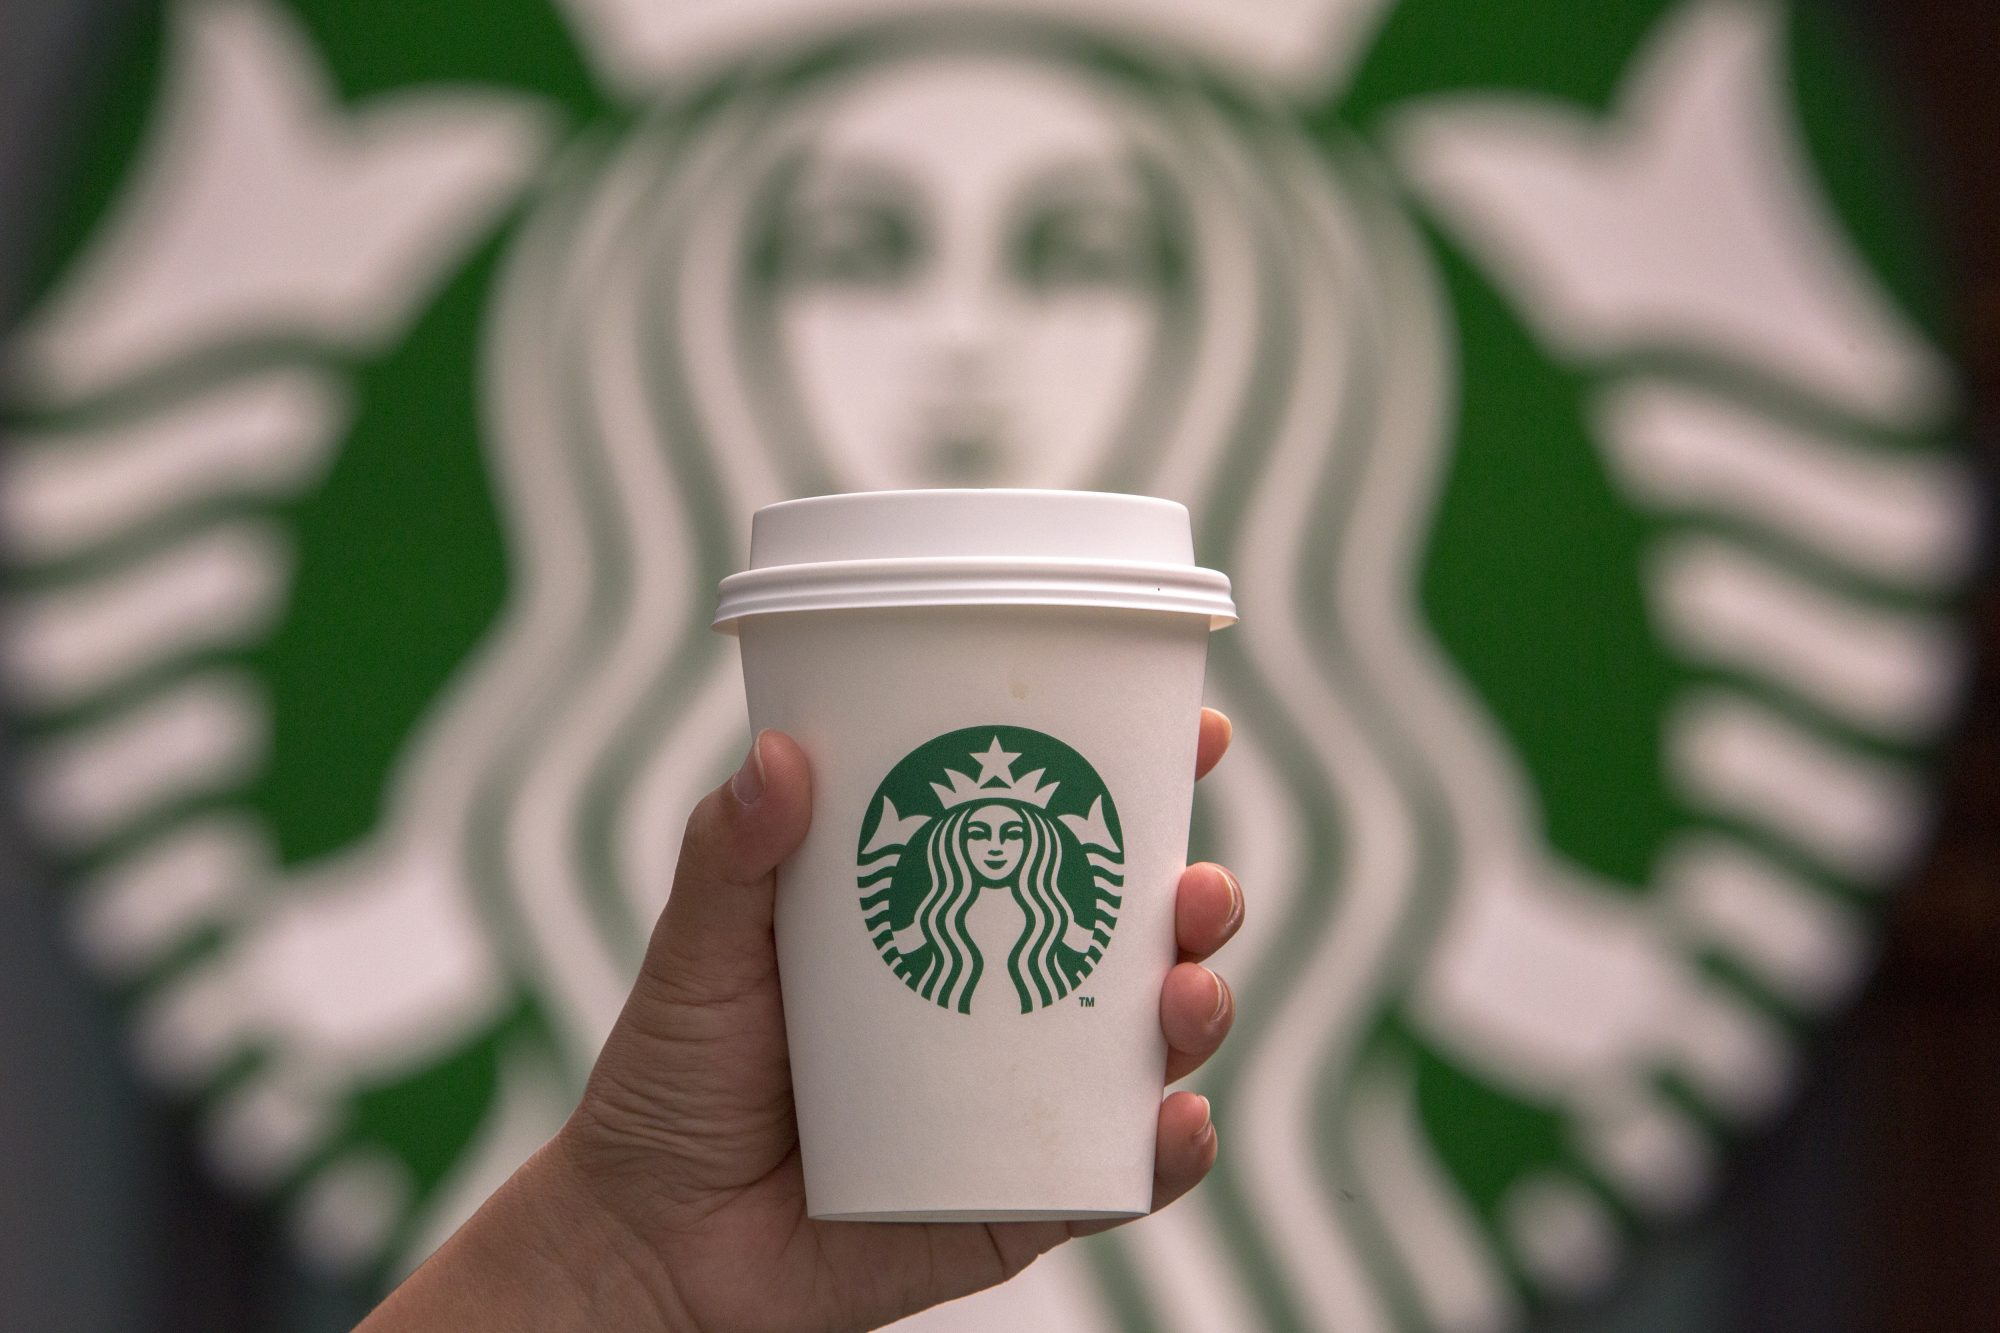 Hand holding a cup of coffee in front of Starbucks logo.